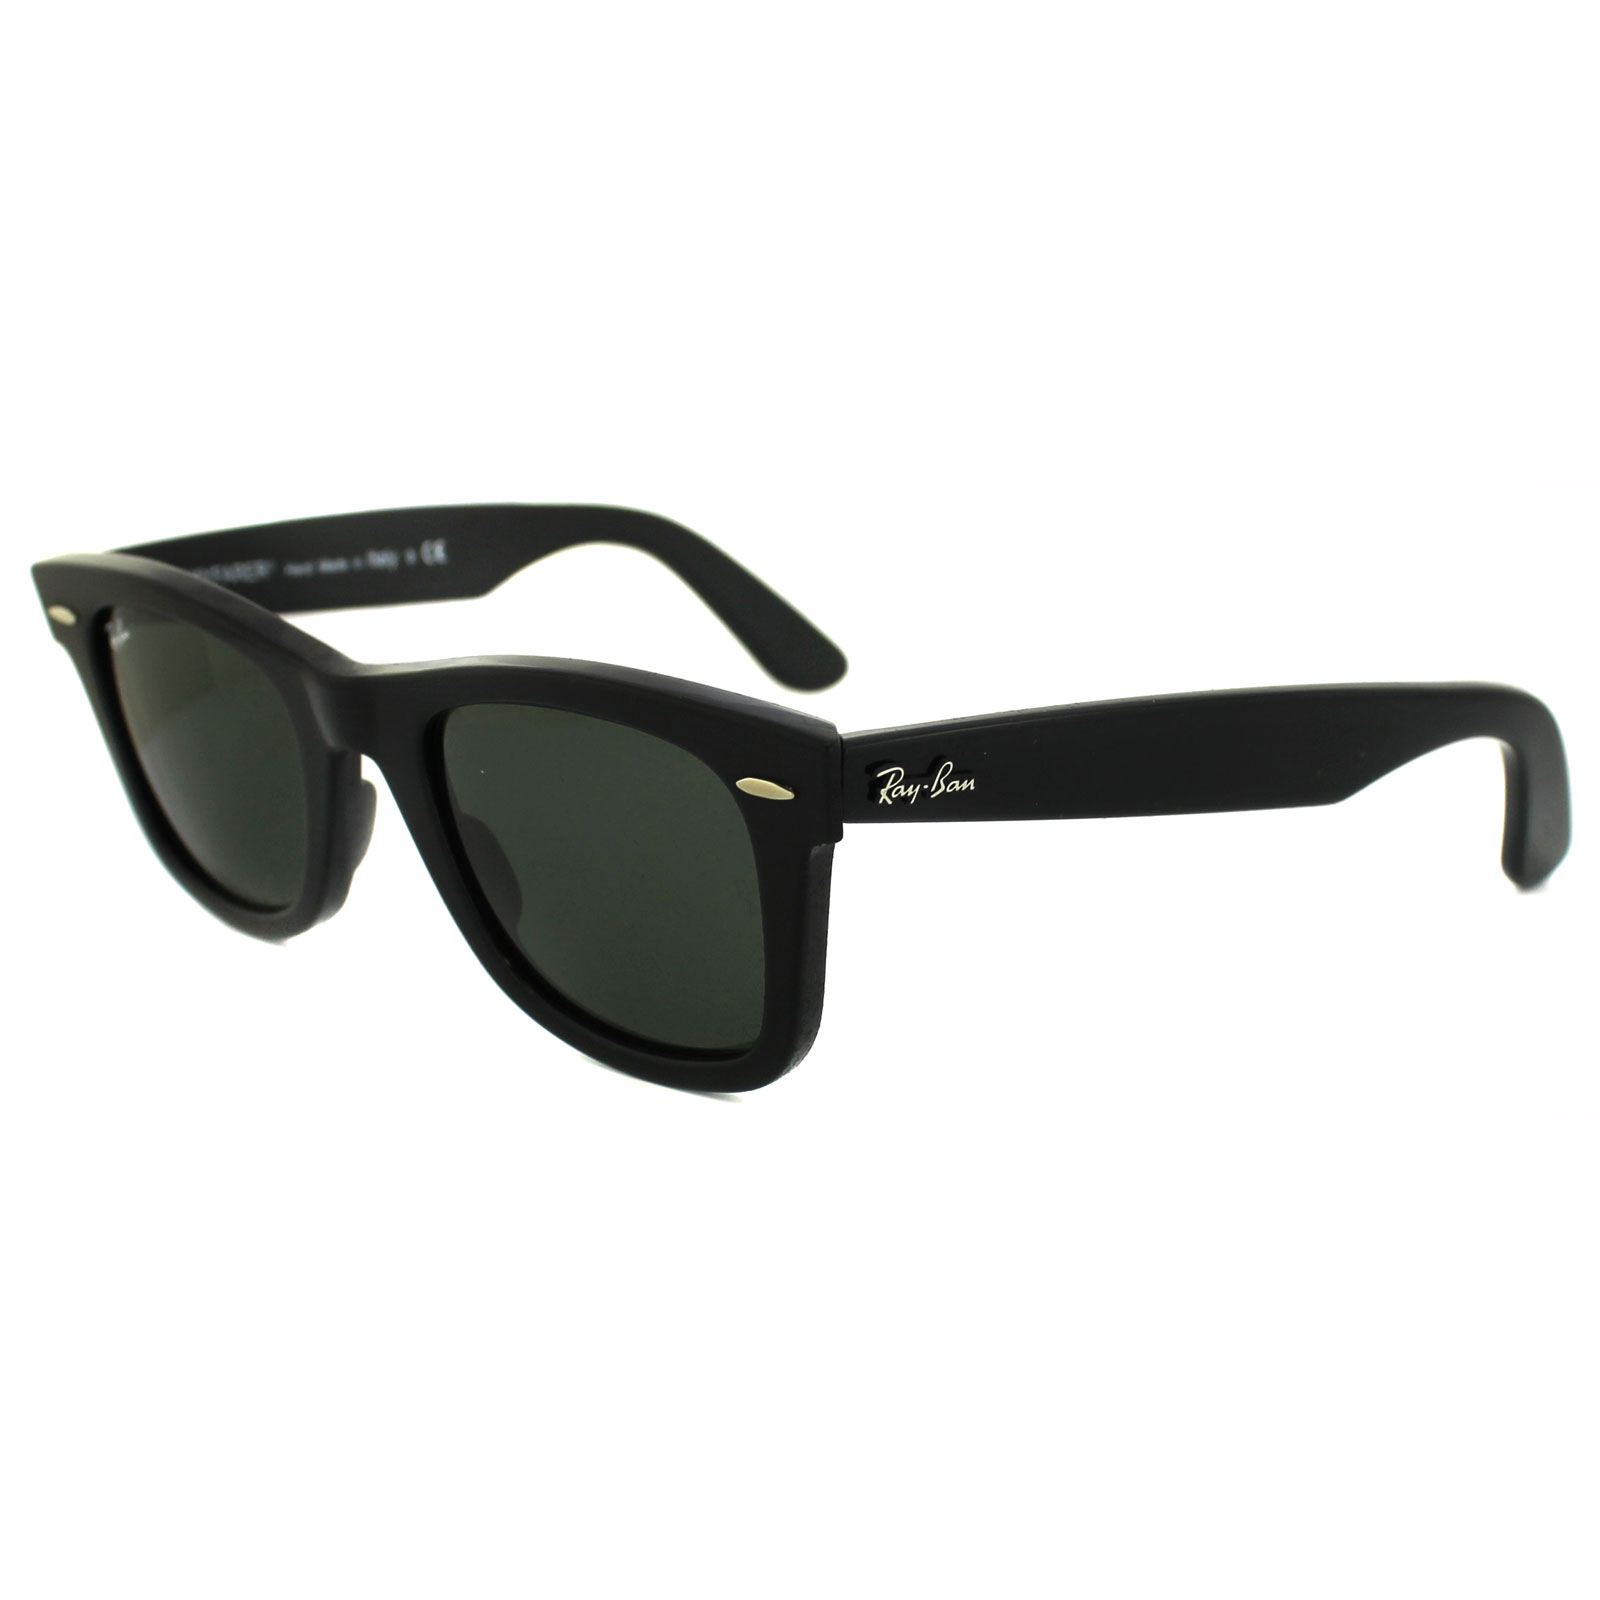 46071922183 Ray-Ban Sunglasses Wayfarer 2140 901 Black Green G-15 Small 47mm Thumbnail  1 ...